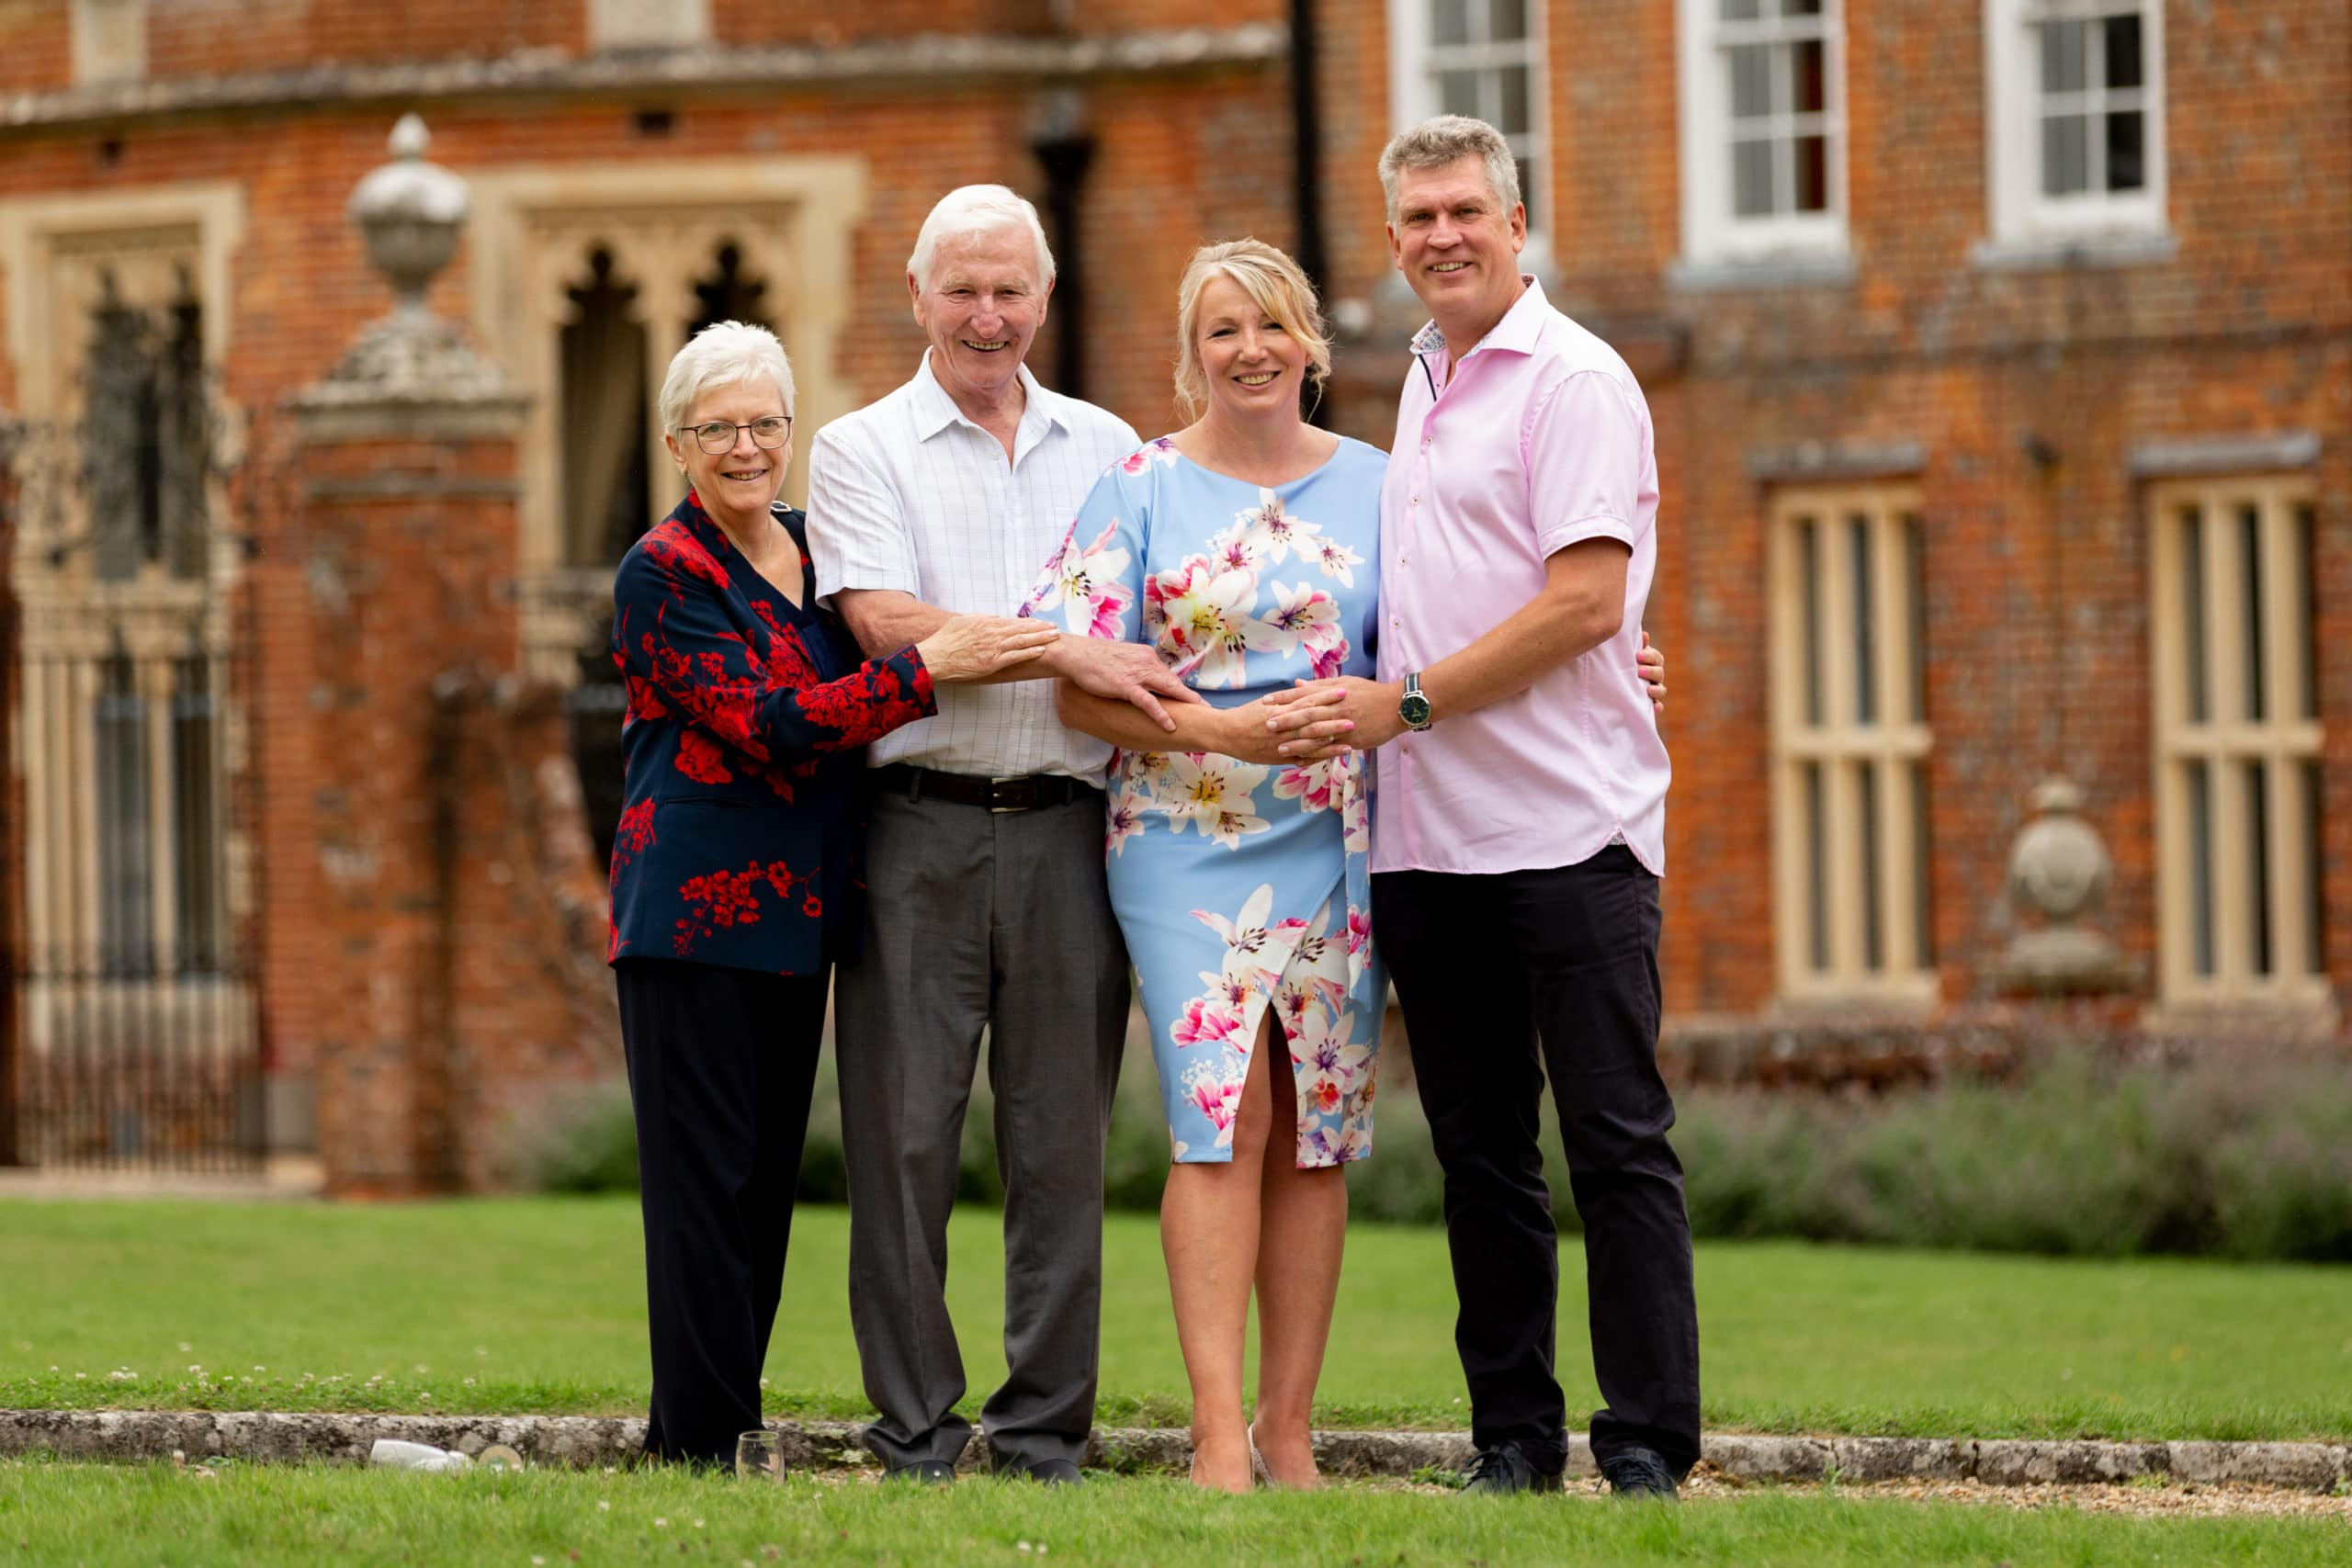 Family Photography West Sussex